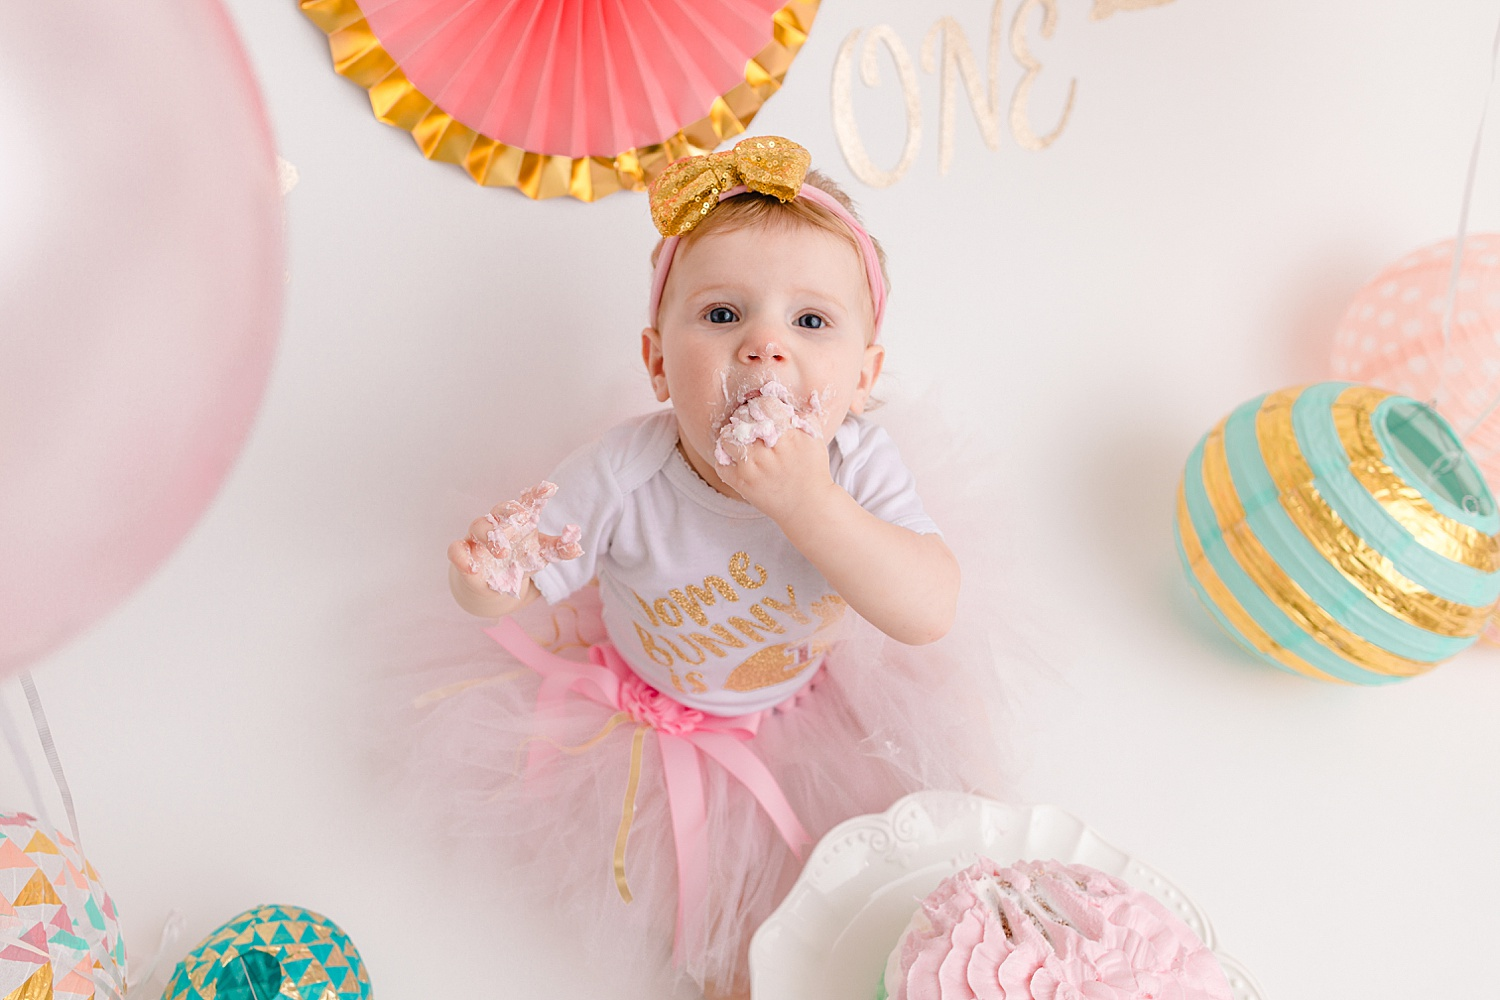 Berks County one year old cake smash portrait photoshoot Pennsylvania child photographer